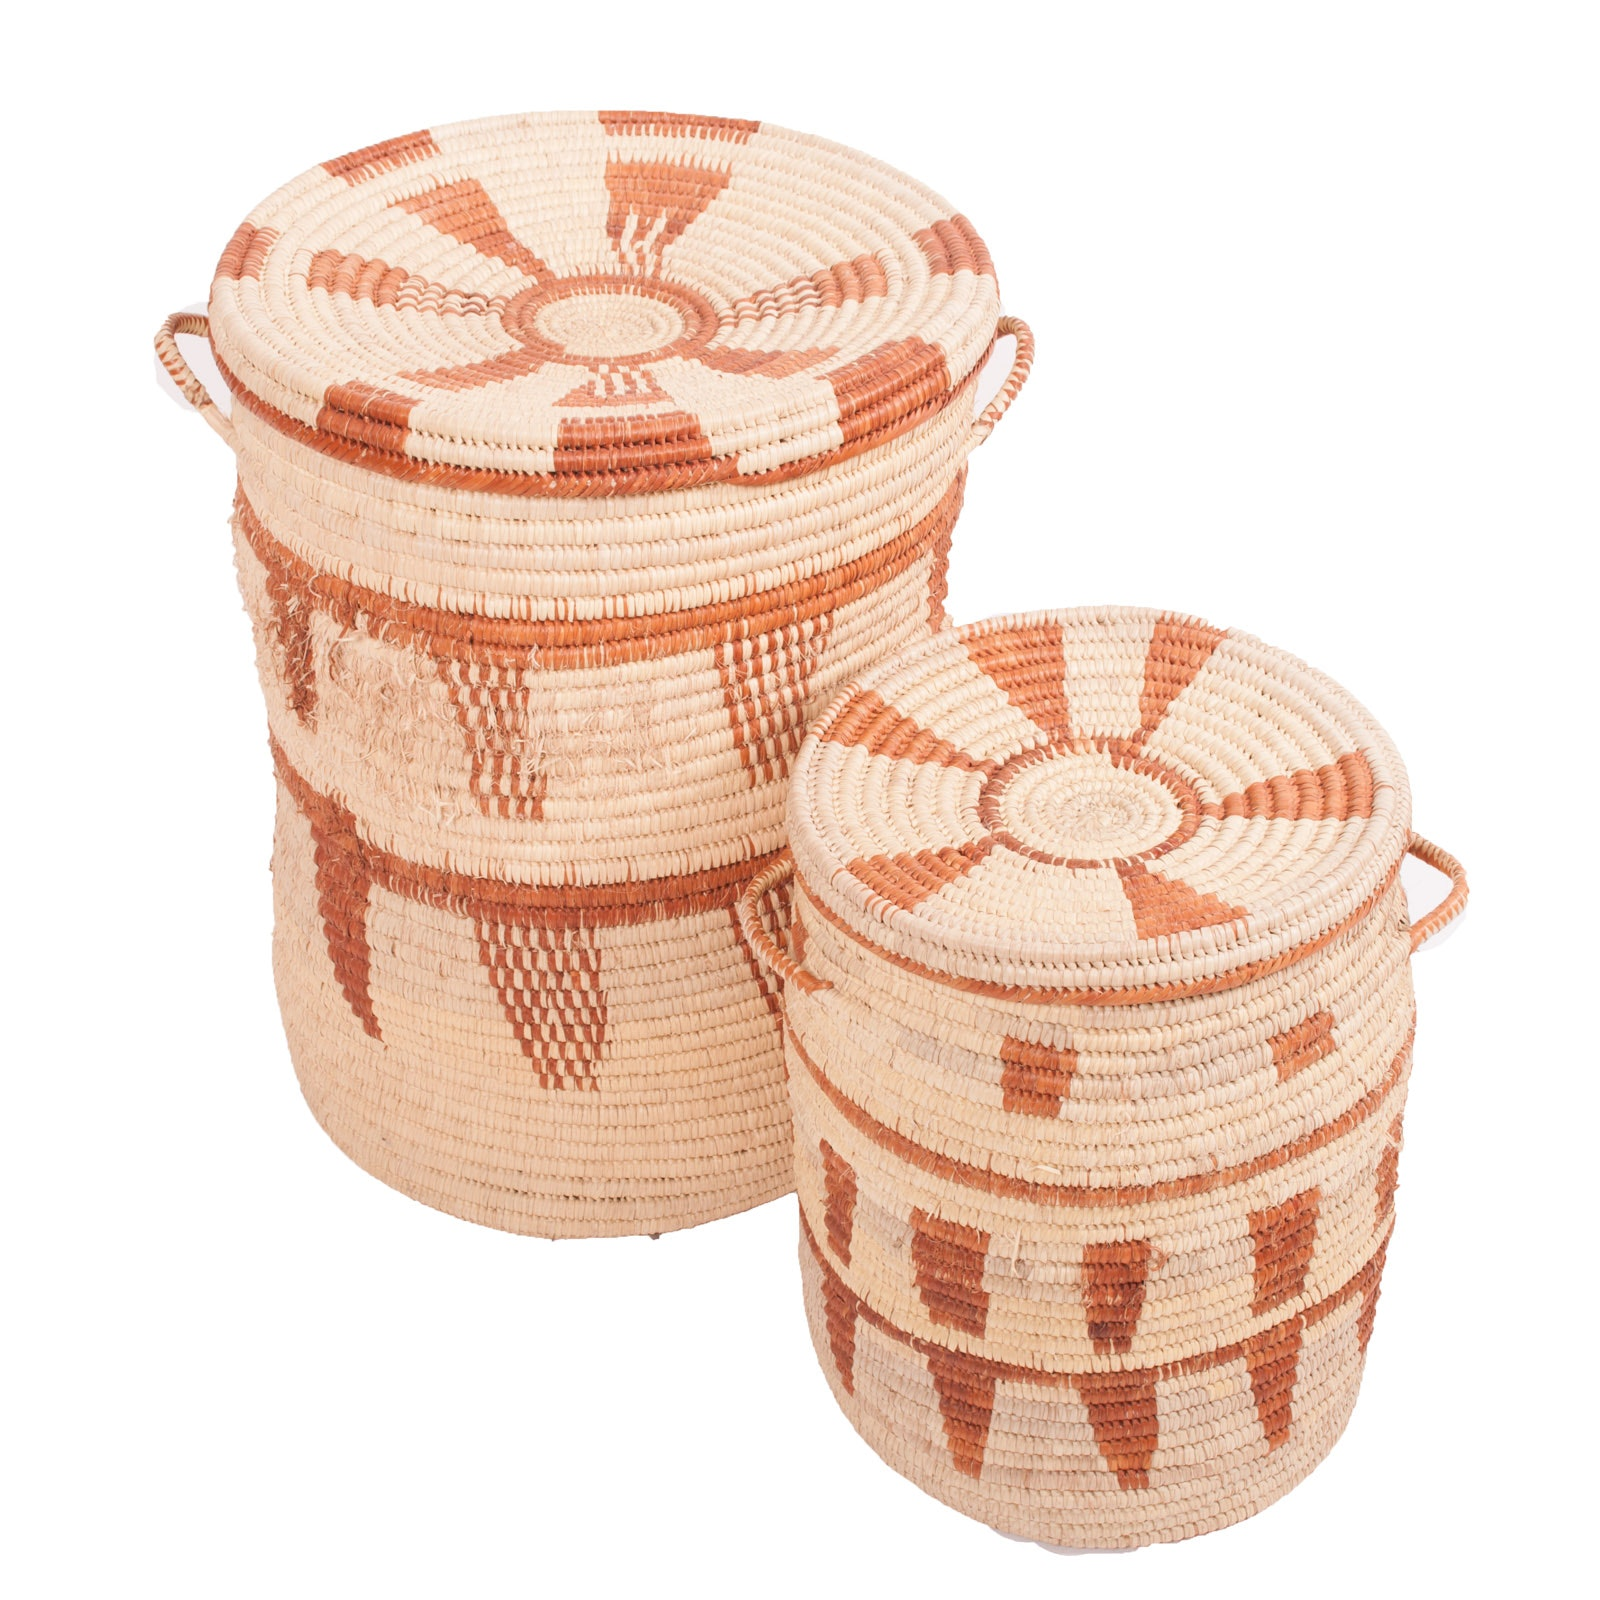 Large Grass Coil Baskets